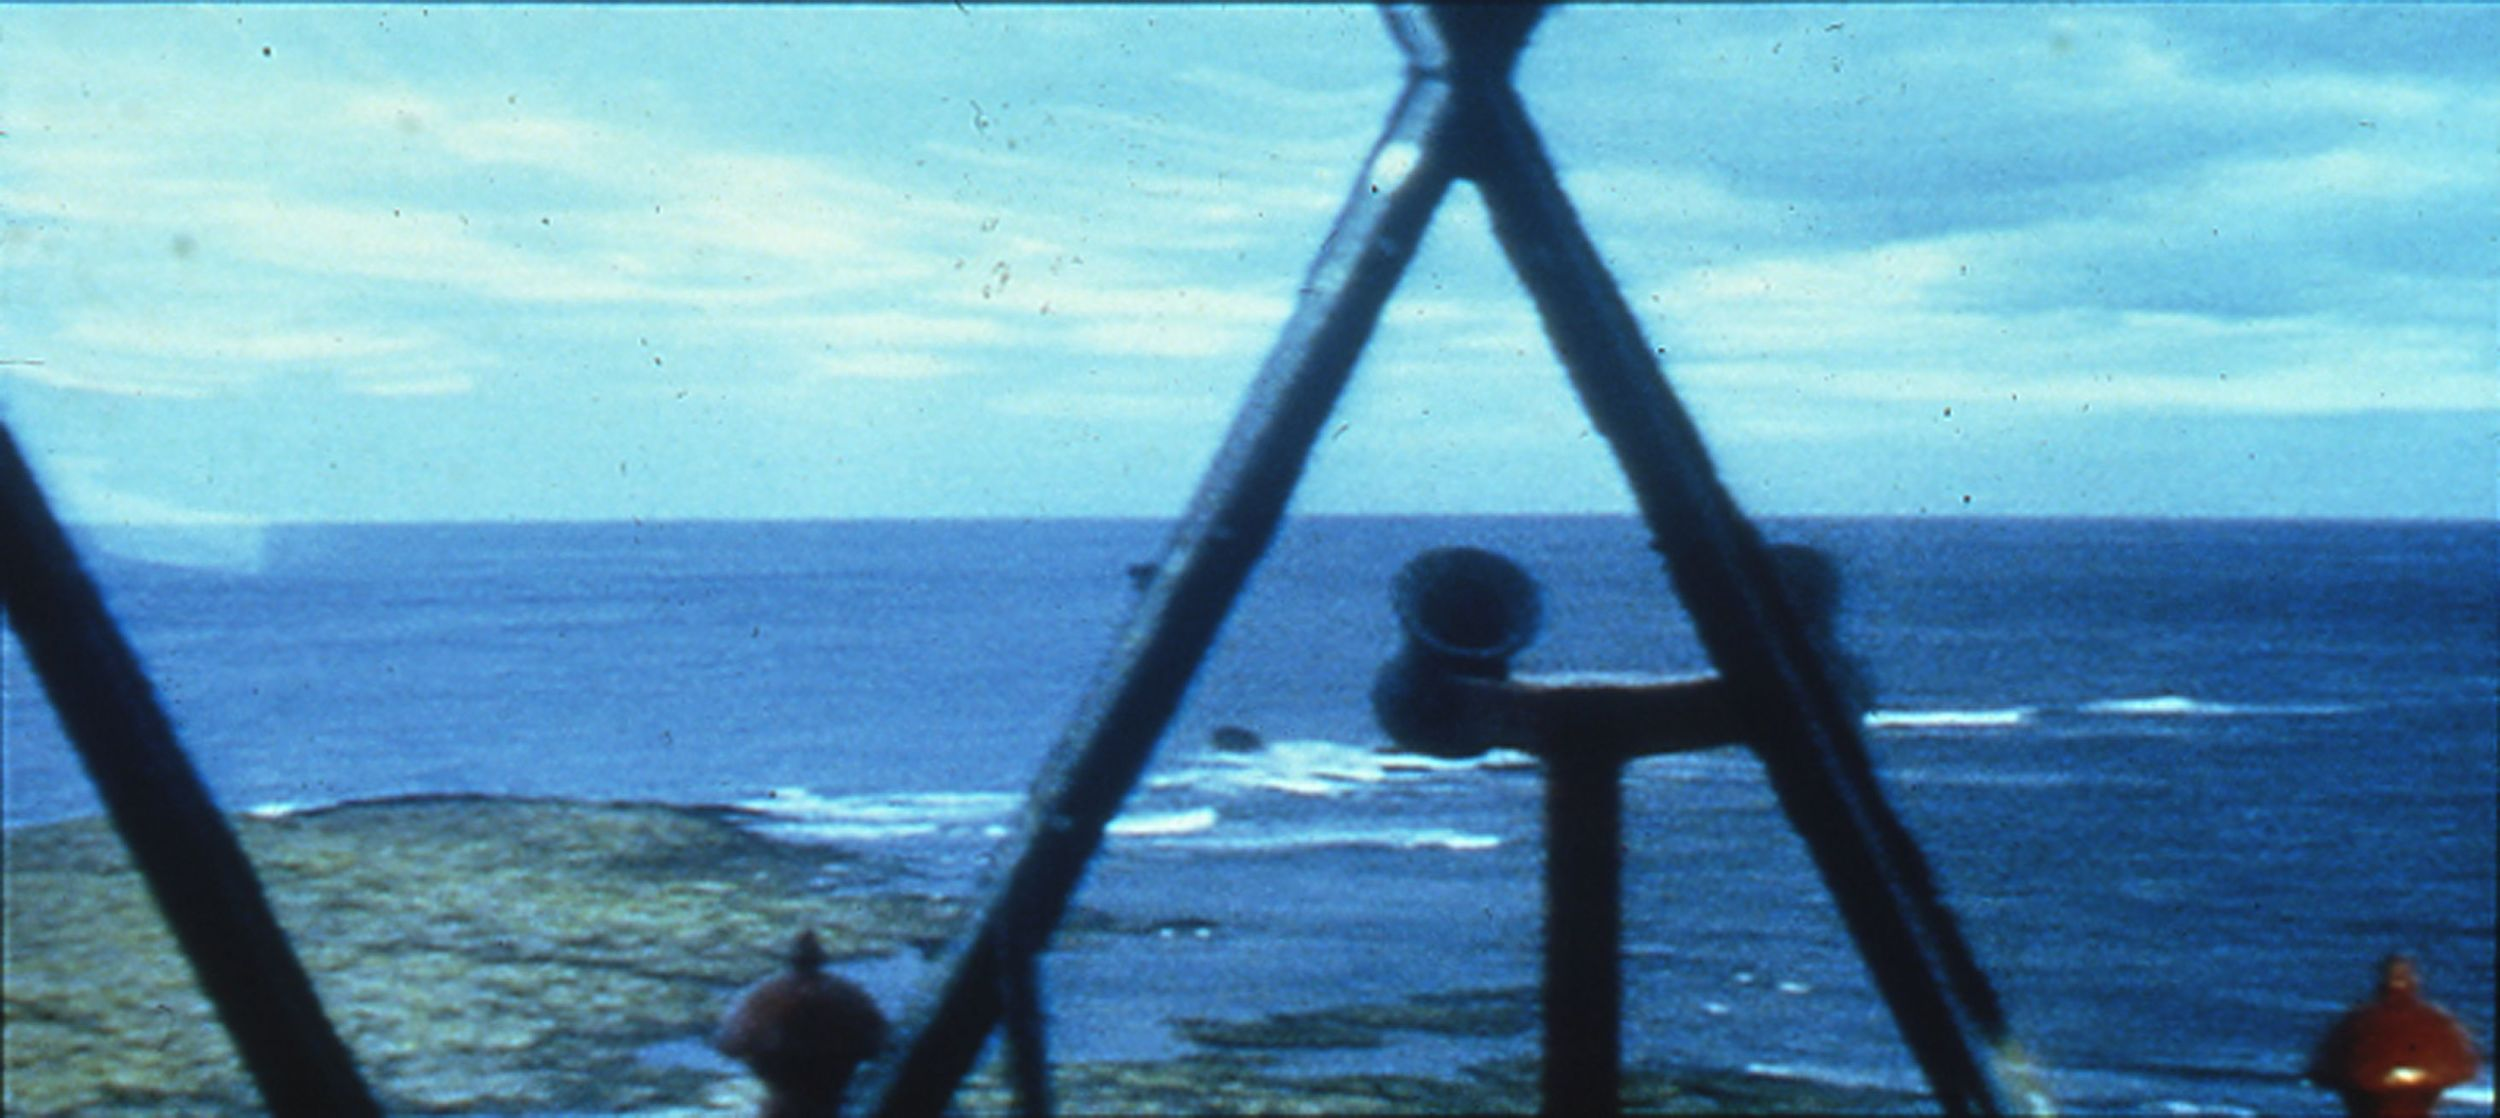 Tacita Dean.  D  isappearance at Sea II,  1996.  16mm color film.